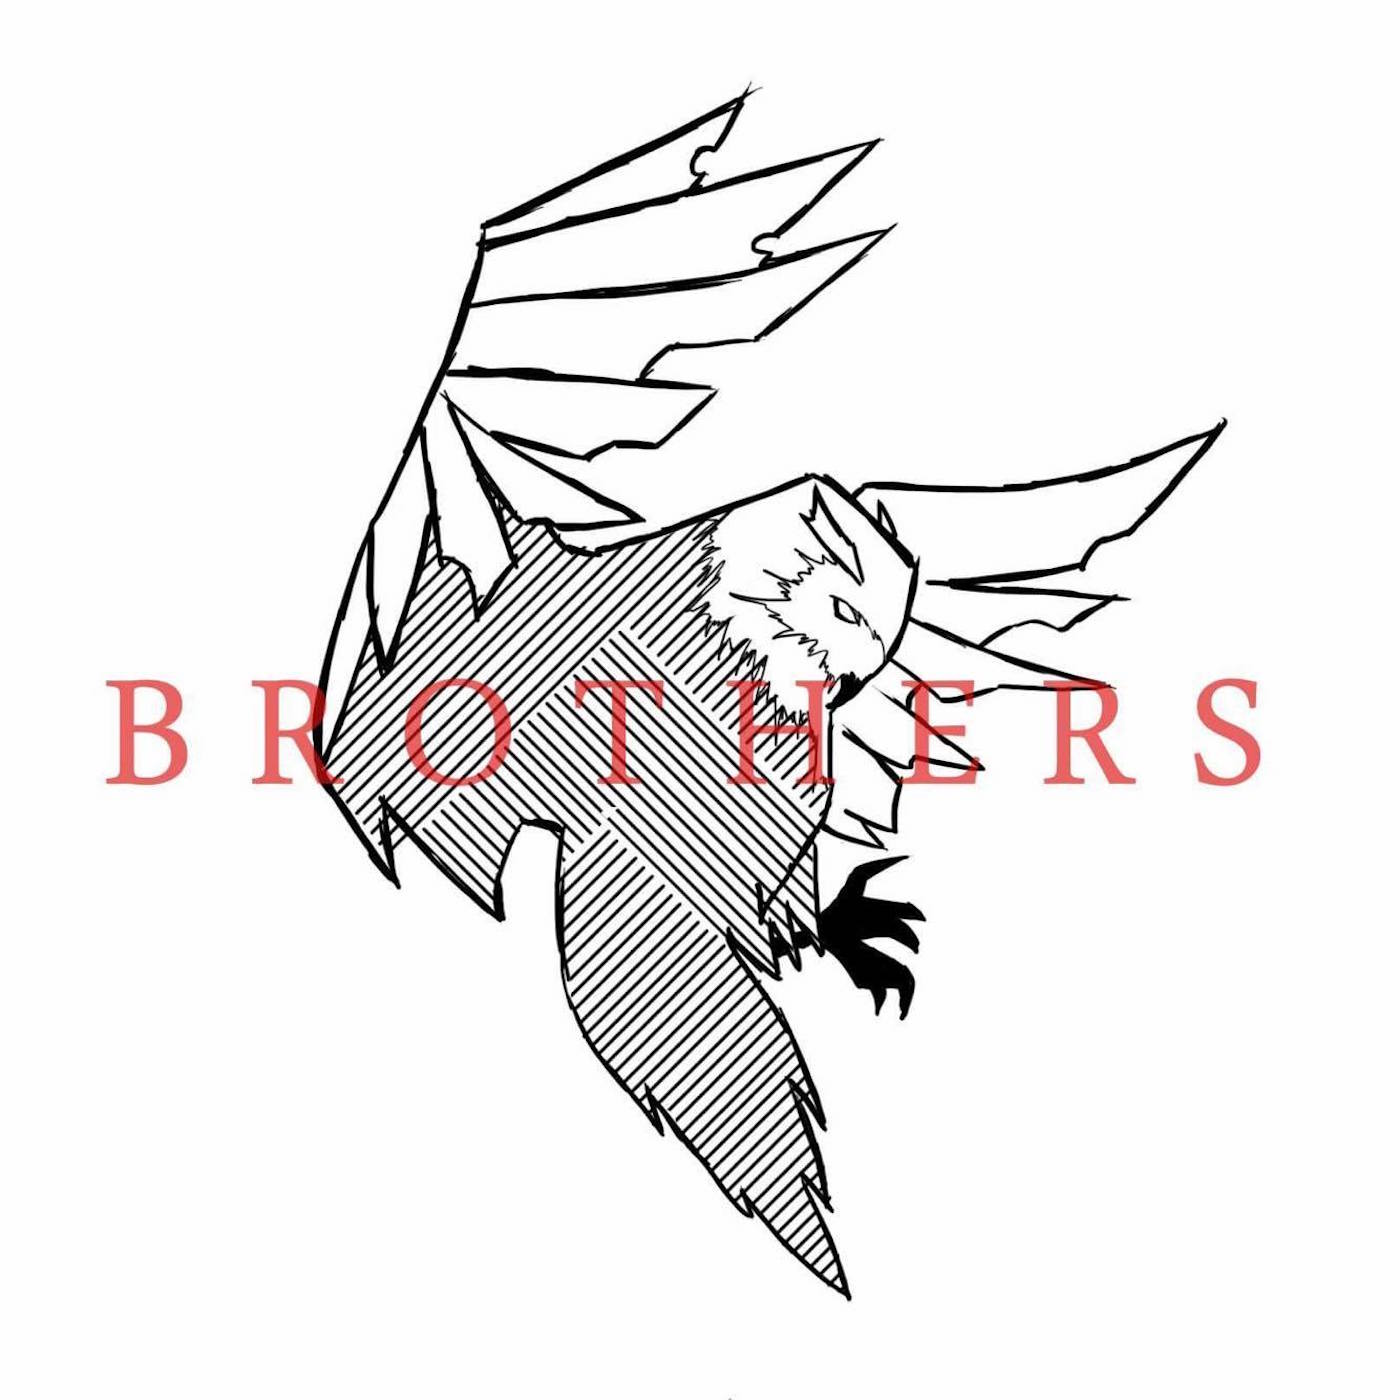 Brothers - '17' & 'Waiting Line'